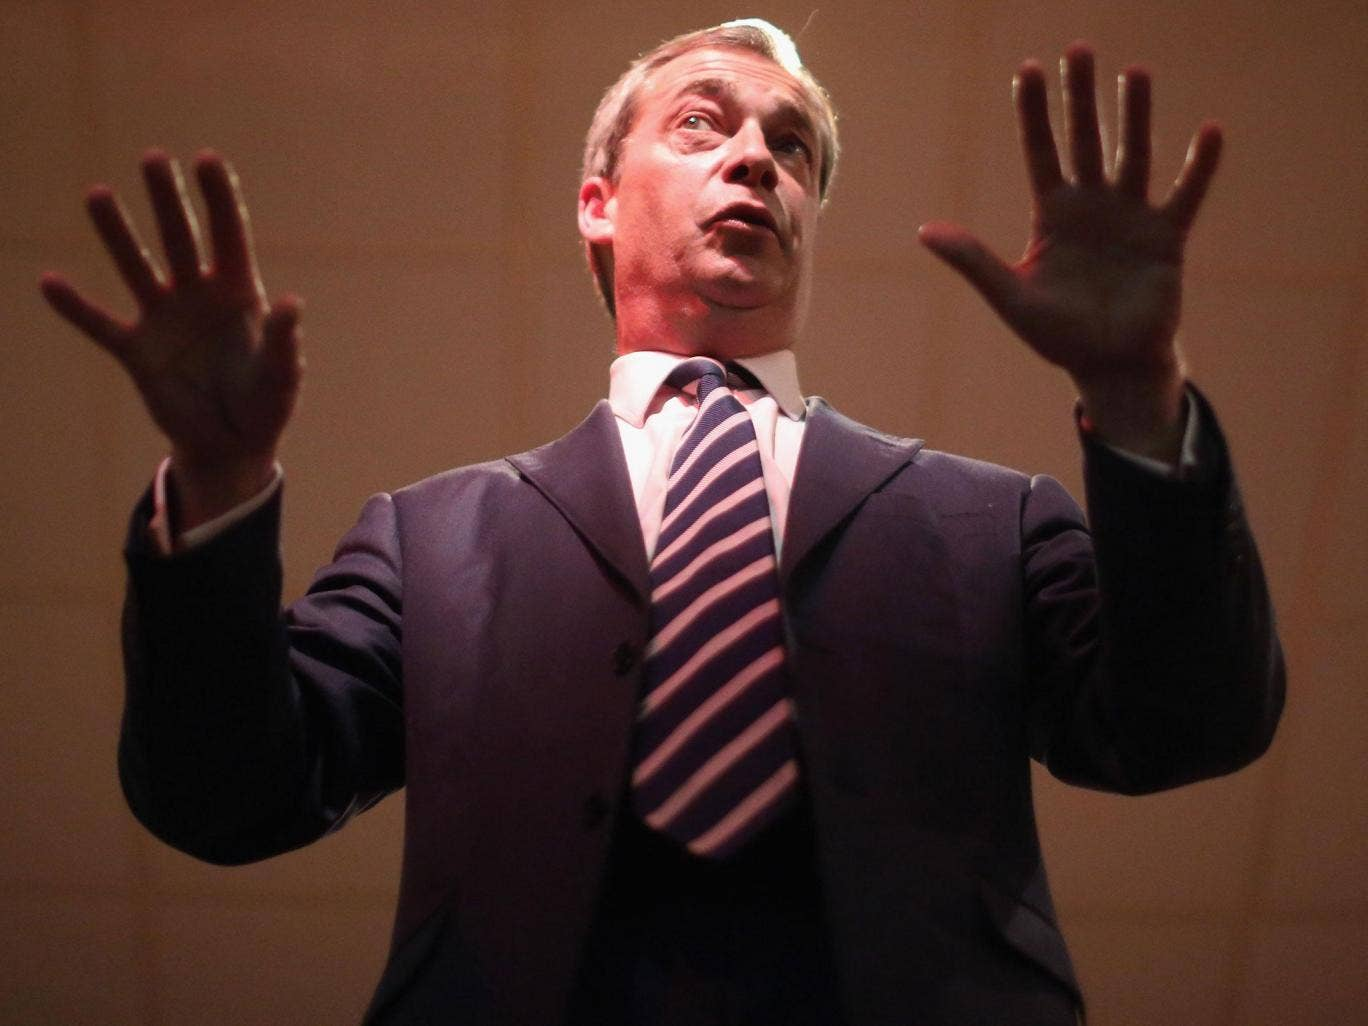 Nigel Farage was accused of being a fascist by teachers when he was at school